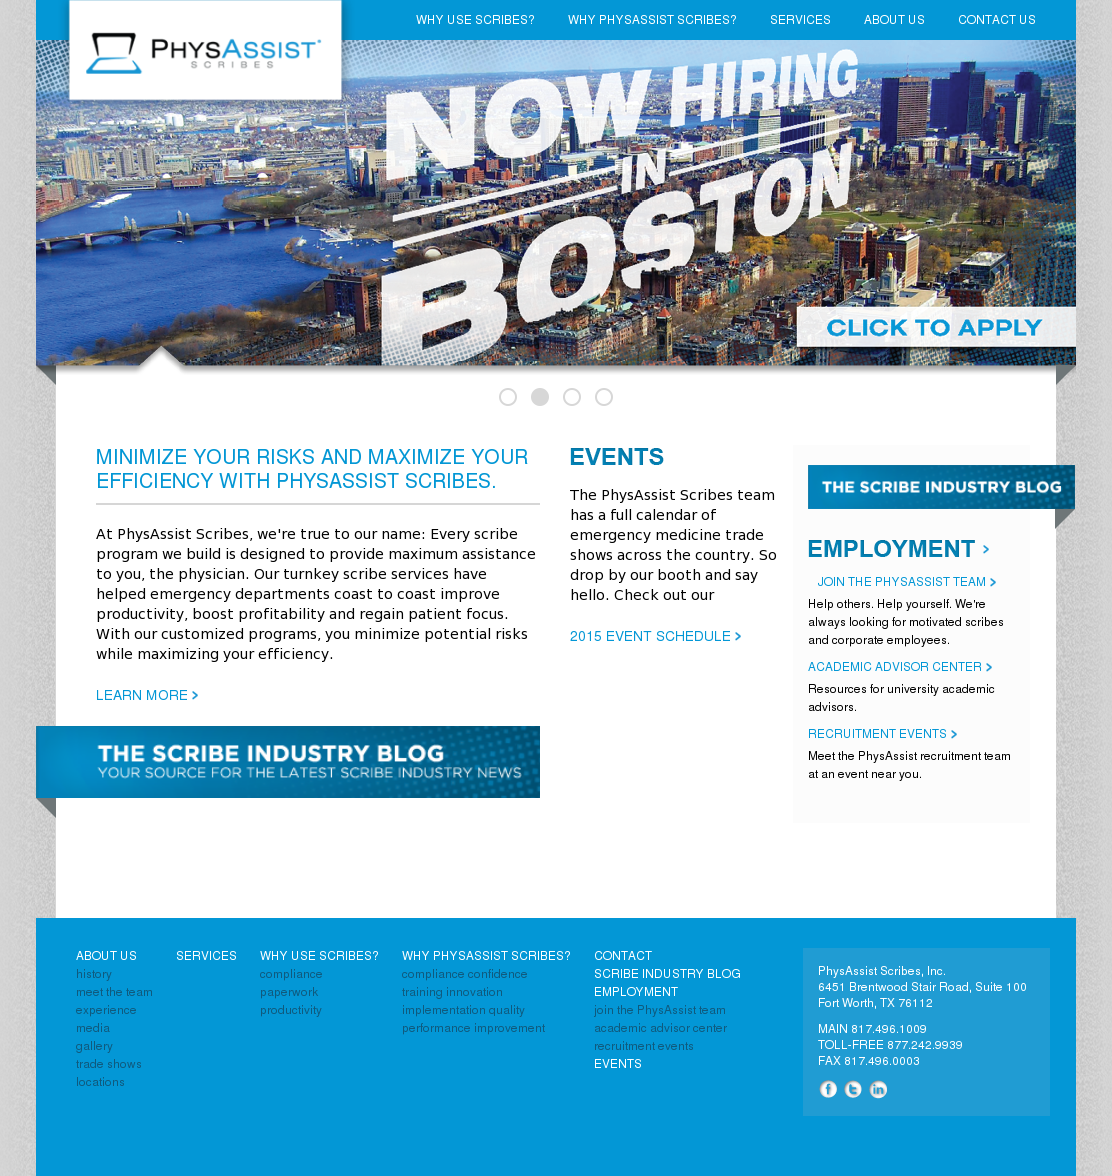 PhysAssist Scribes Competitors, Revenue and Employees